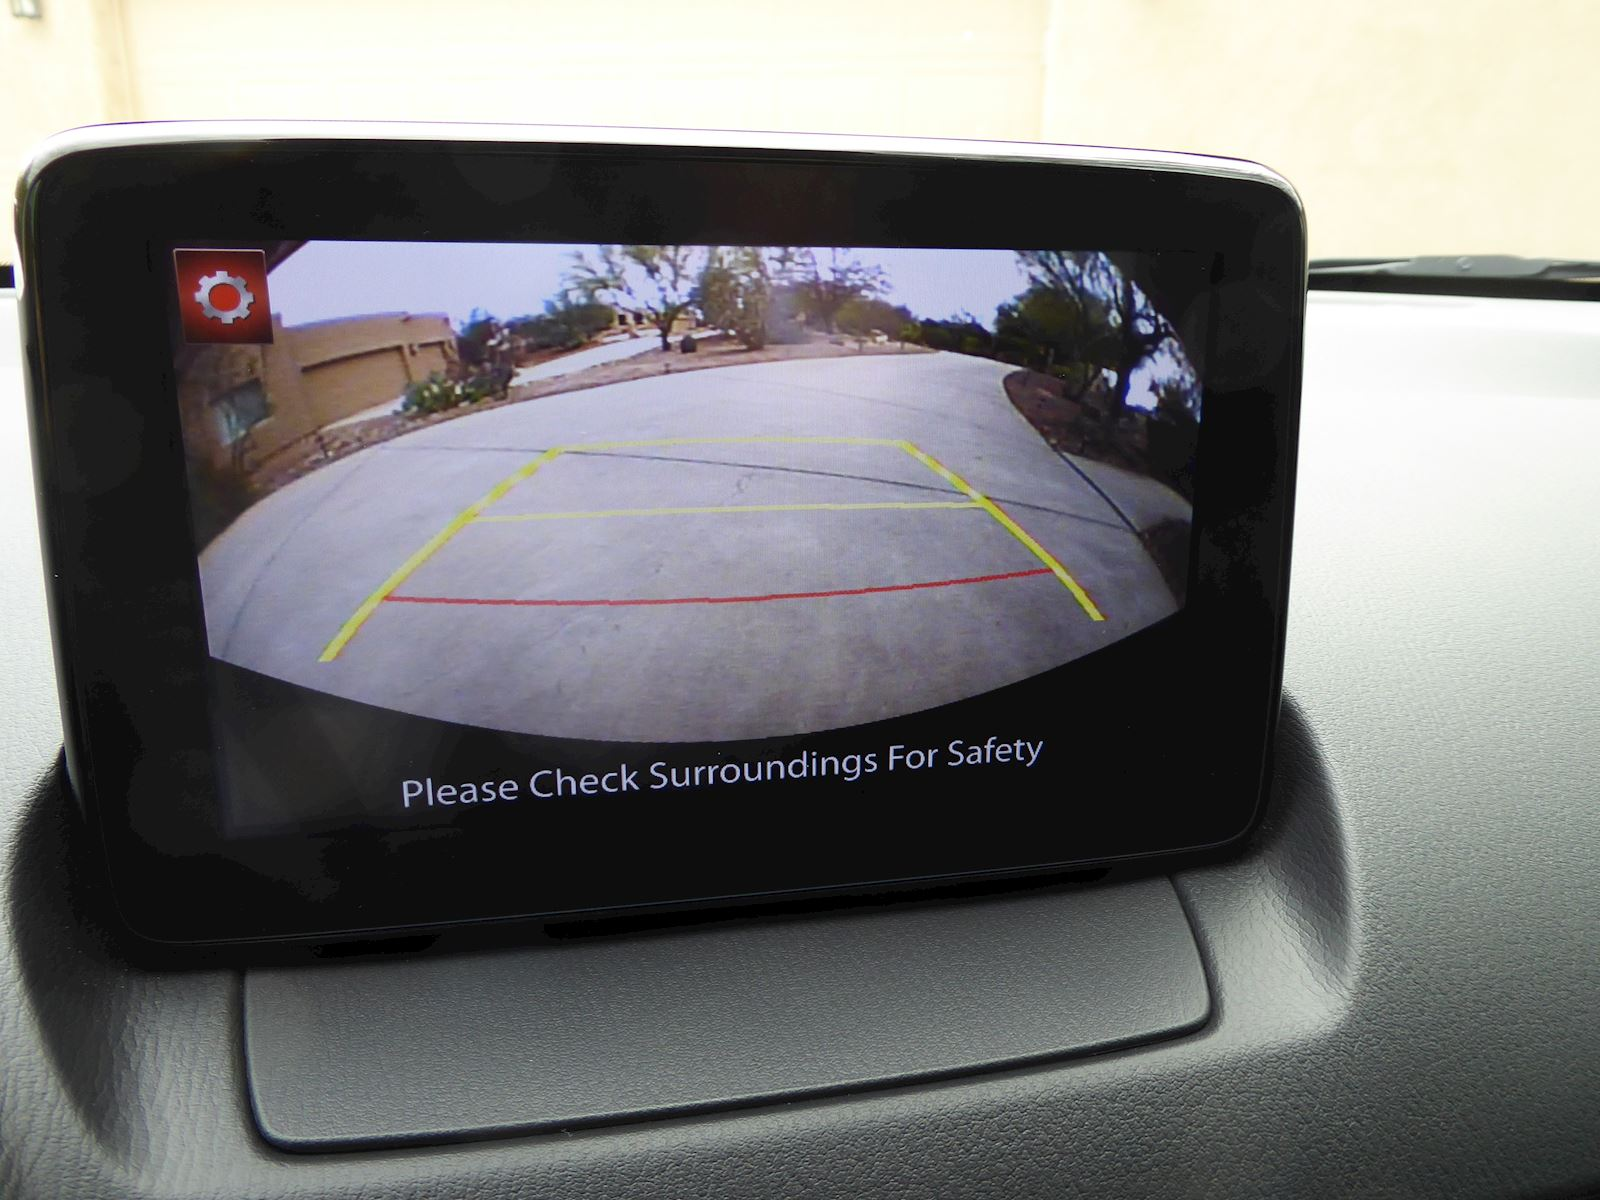 2020 Toyota Yaris backup camera